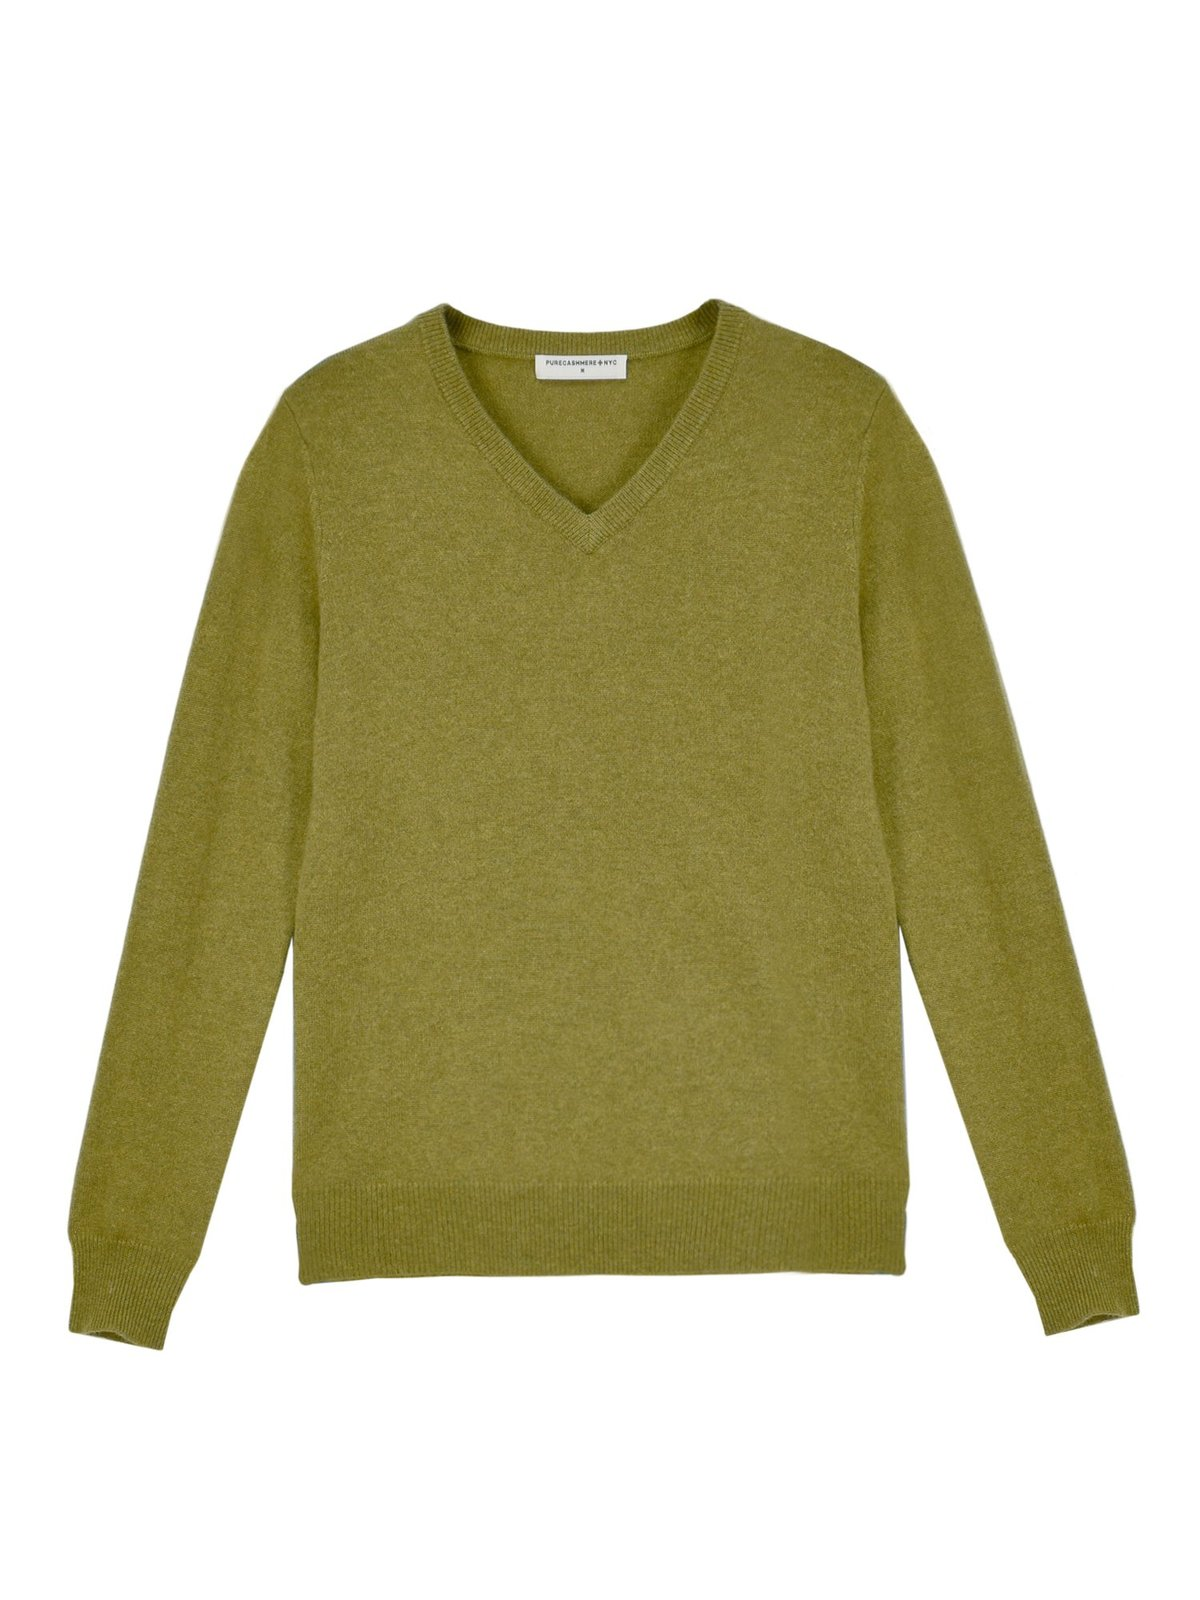 PURE CASHMERE NYC V Neck Sweater Olive